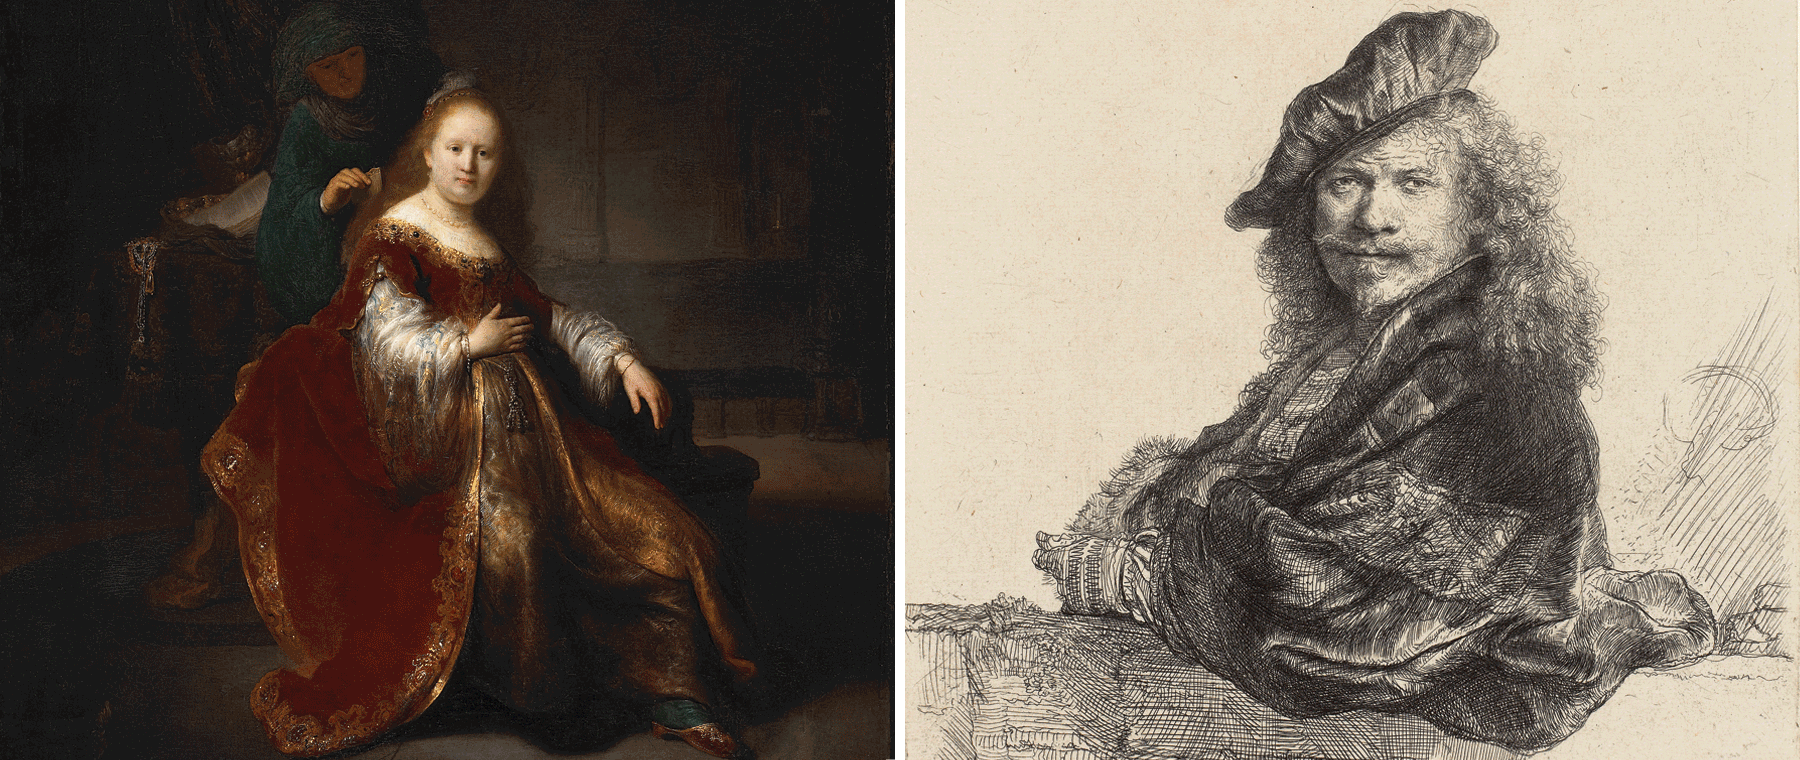 Rembrandt: Gore, fame, and the one-name club